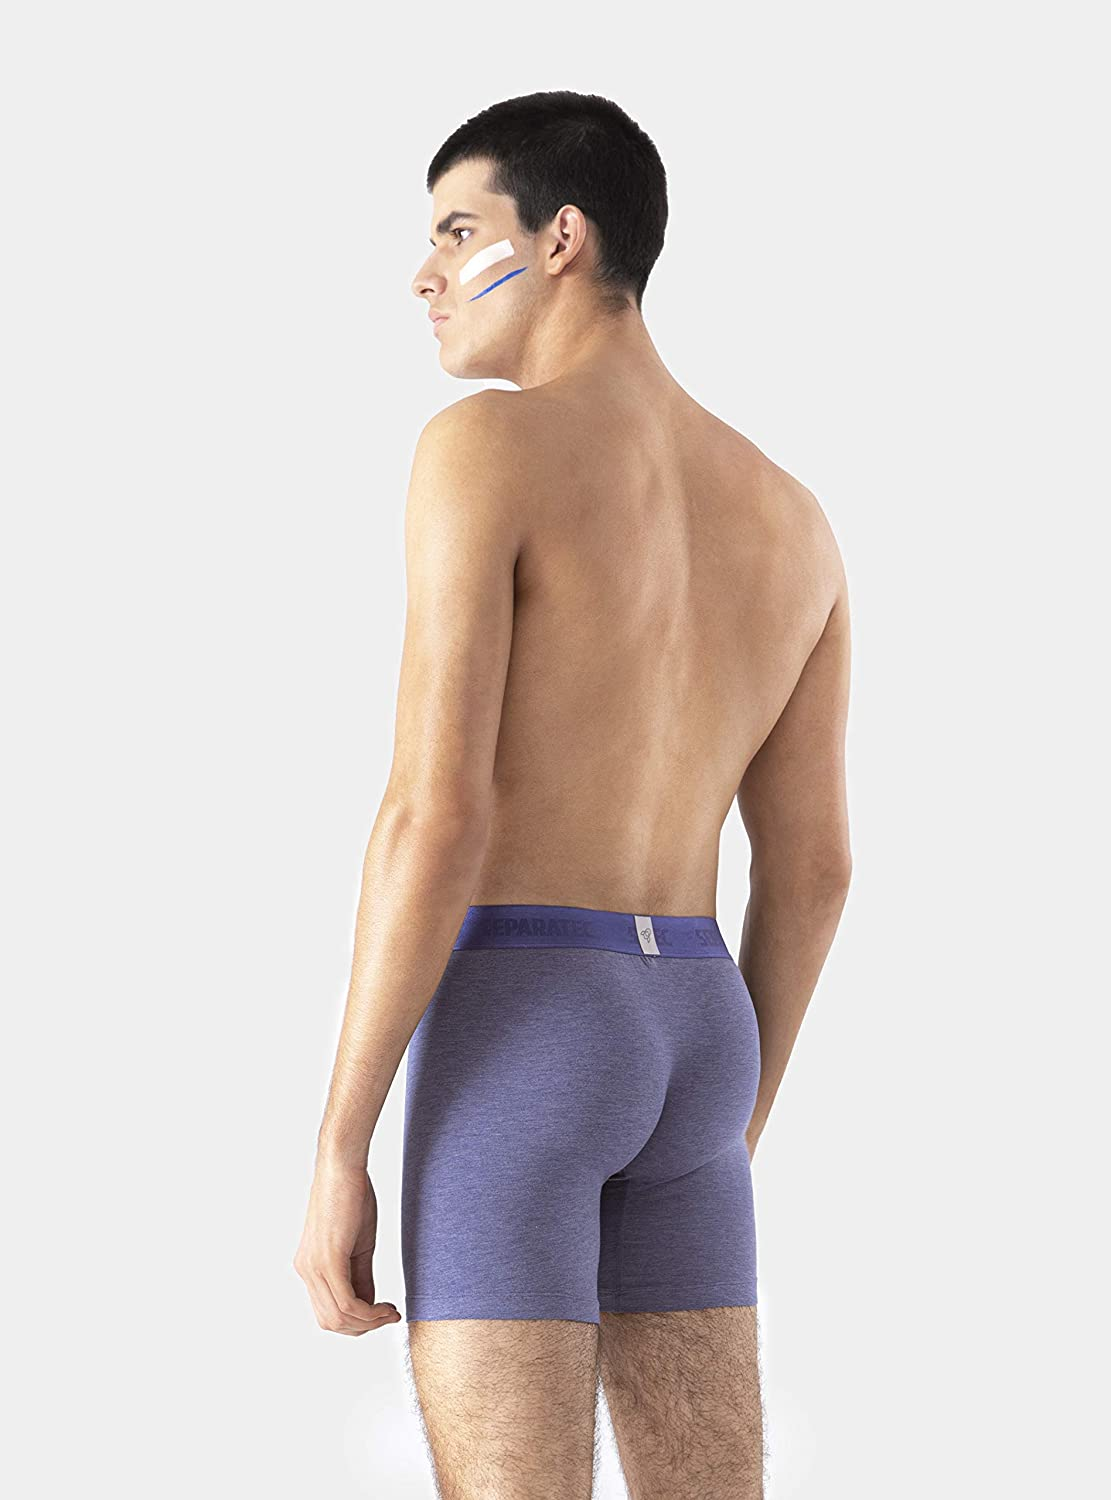 Separatec Men's Dual Pouch Underwear Soft Breathable Micro Modal Viscose Boxer Briefs or Trunks 3 Pack